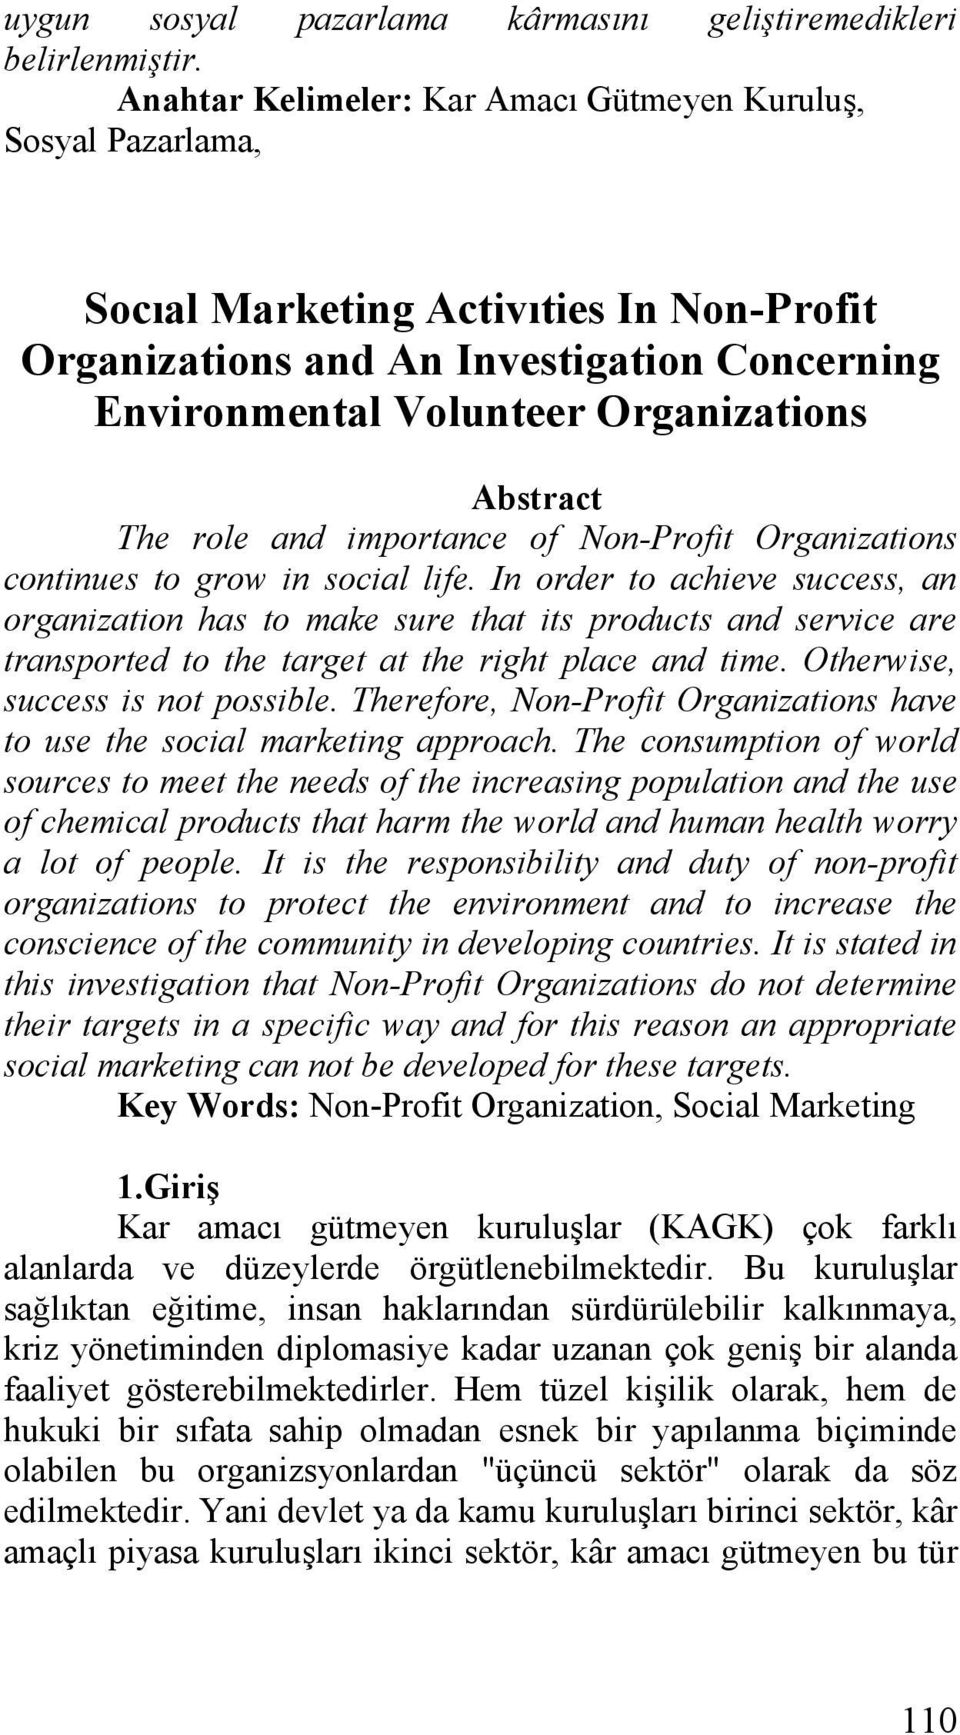 The role and importance of Non-Profit Organizations continues to grow in social life.